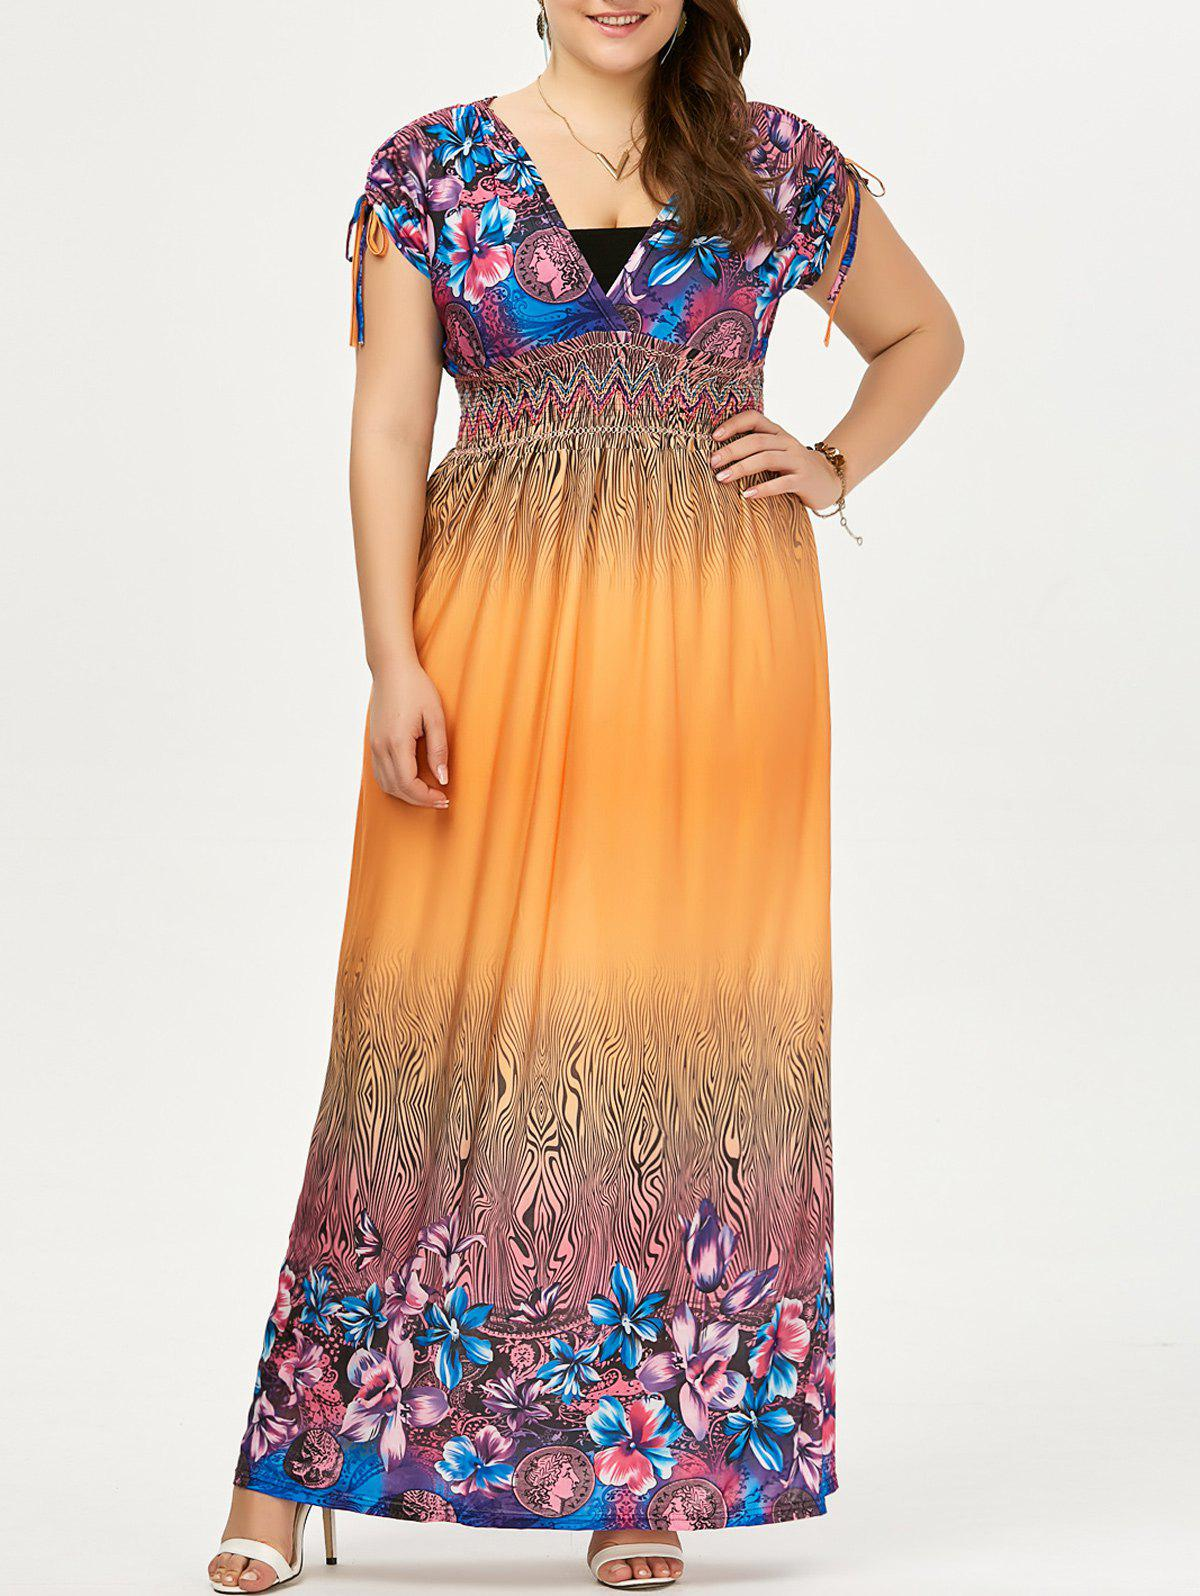 Plus Size Ombre Imprimé Maxi Boho Dress - Orange 3XL